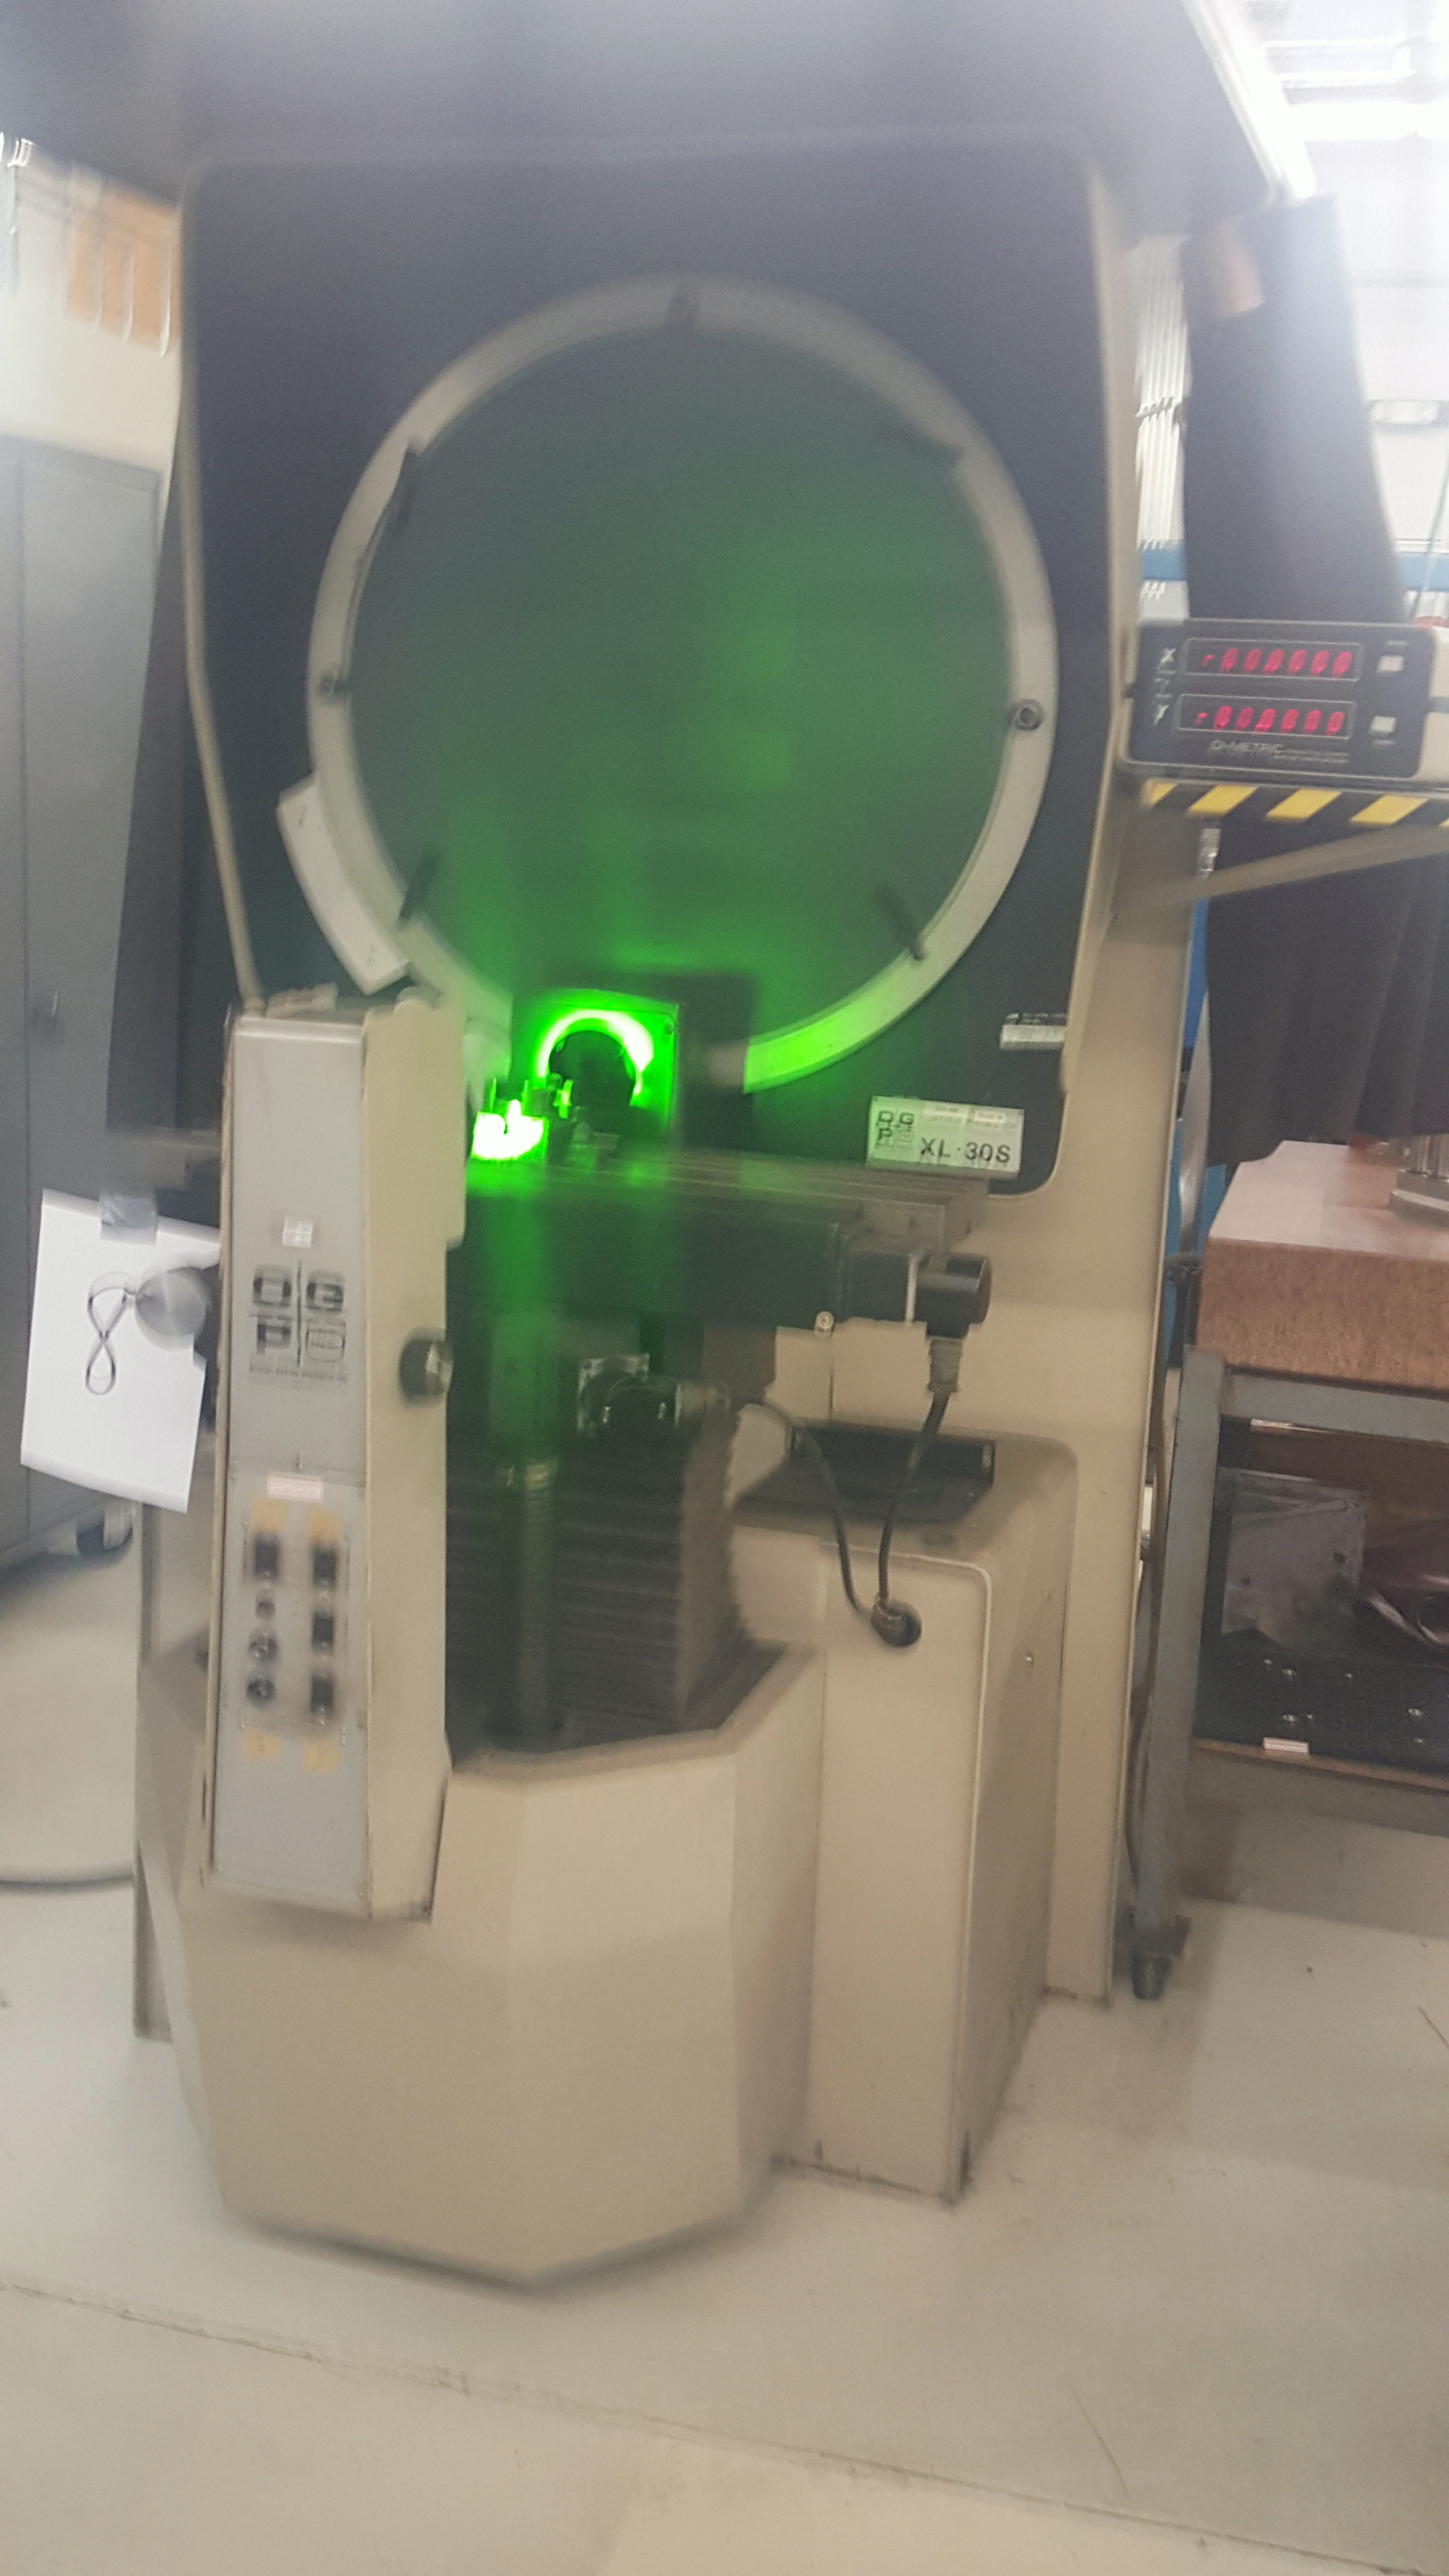 """OGP 30"""" Optical Comparator Projector, Model IXL-827, XL30S, S/N 8270292, under power - Image 2 of 8"""